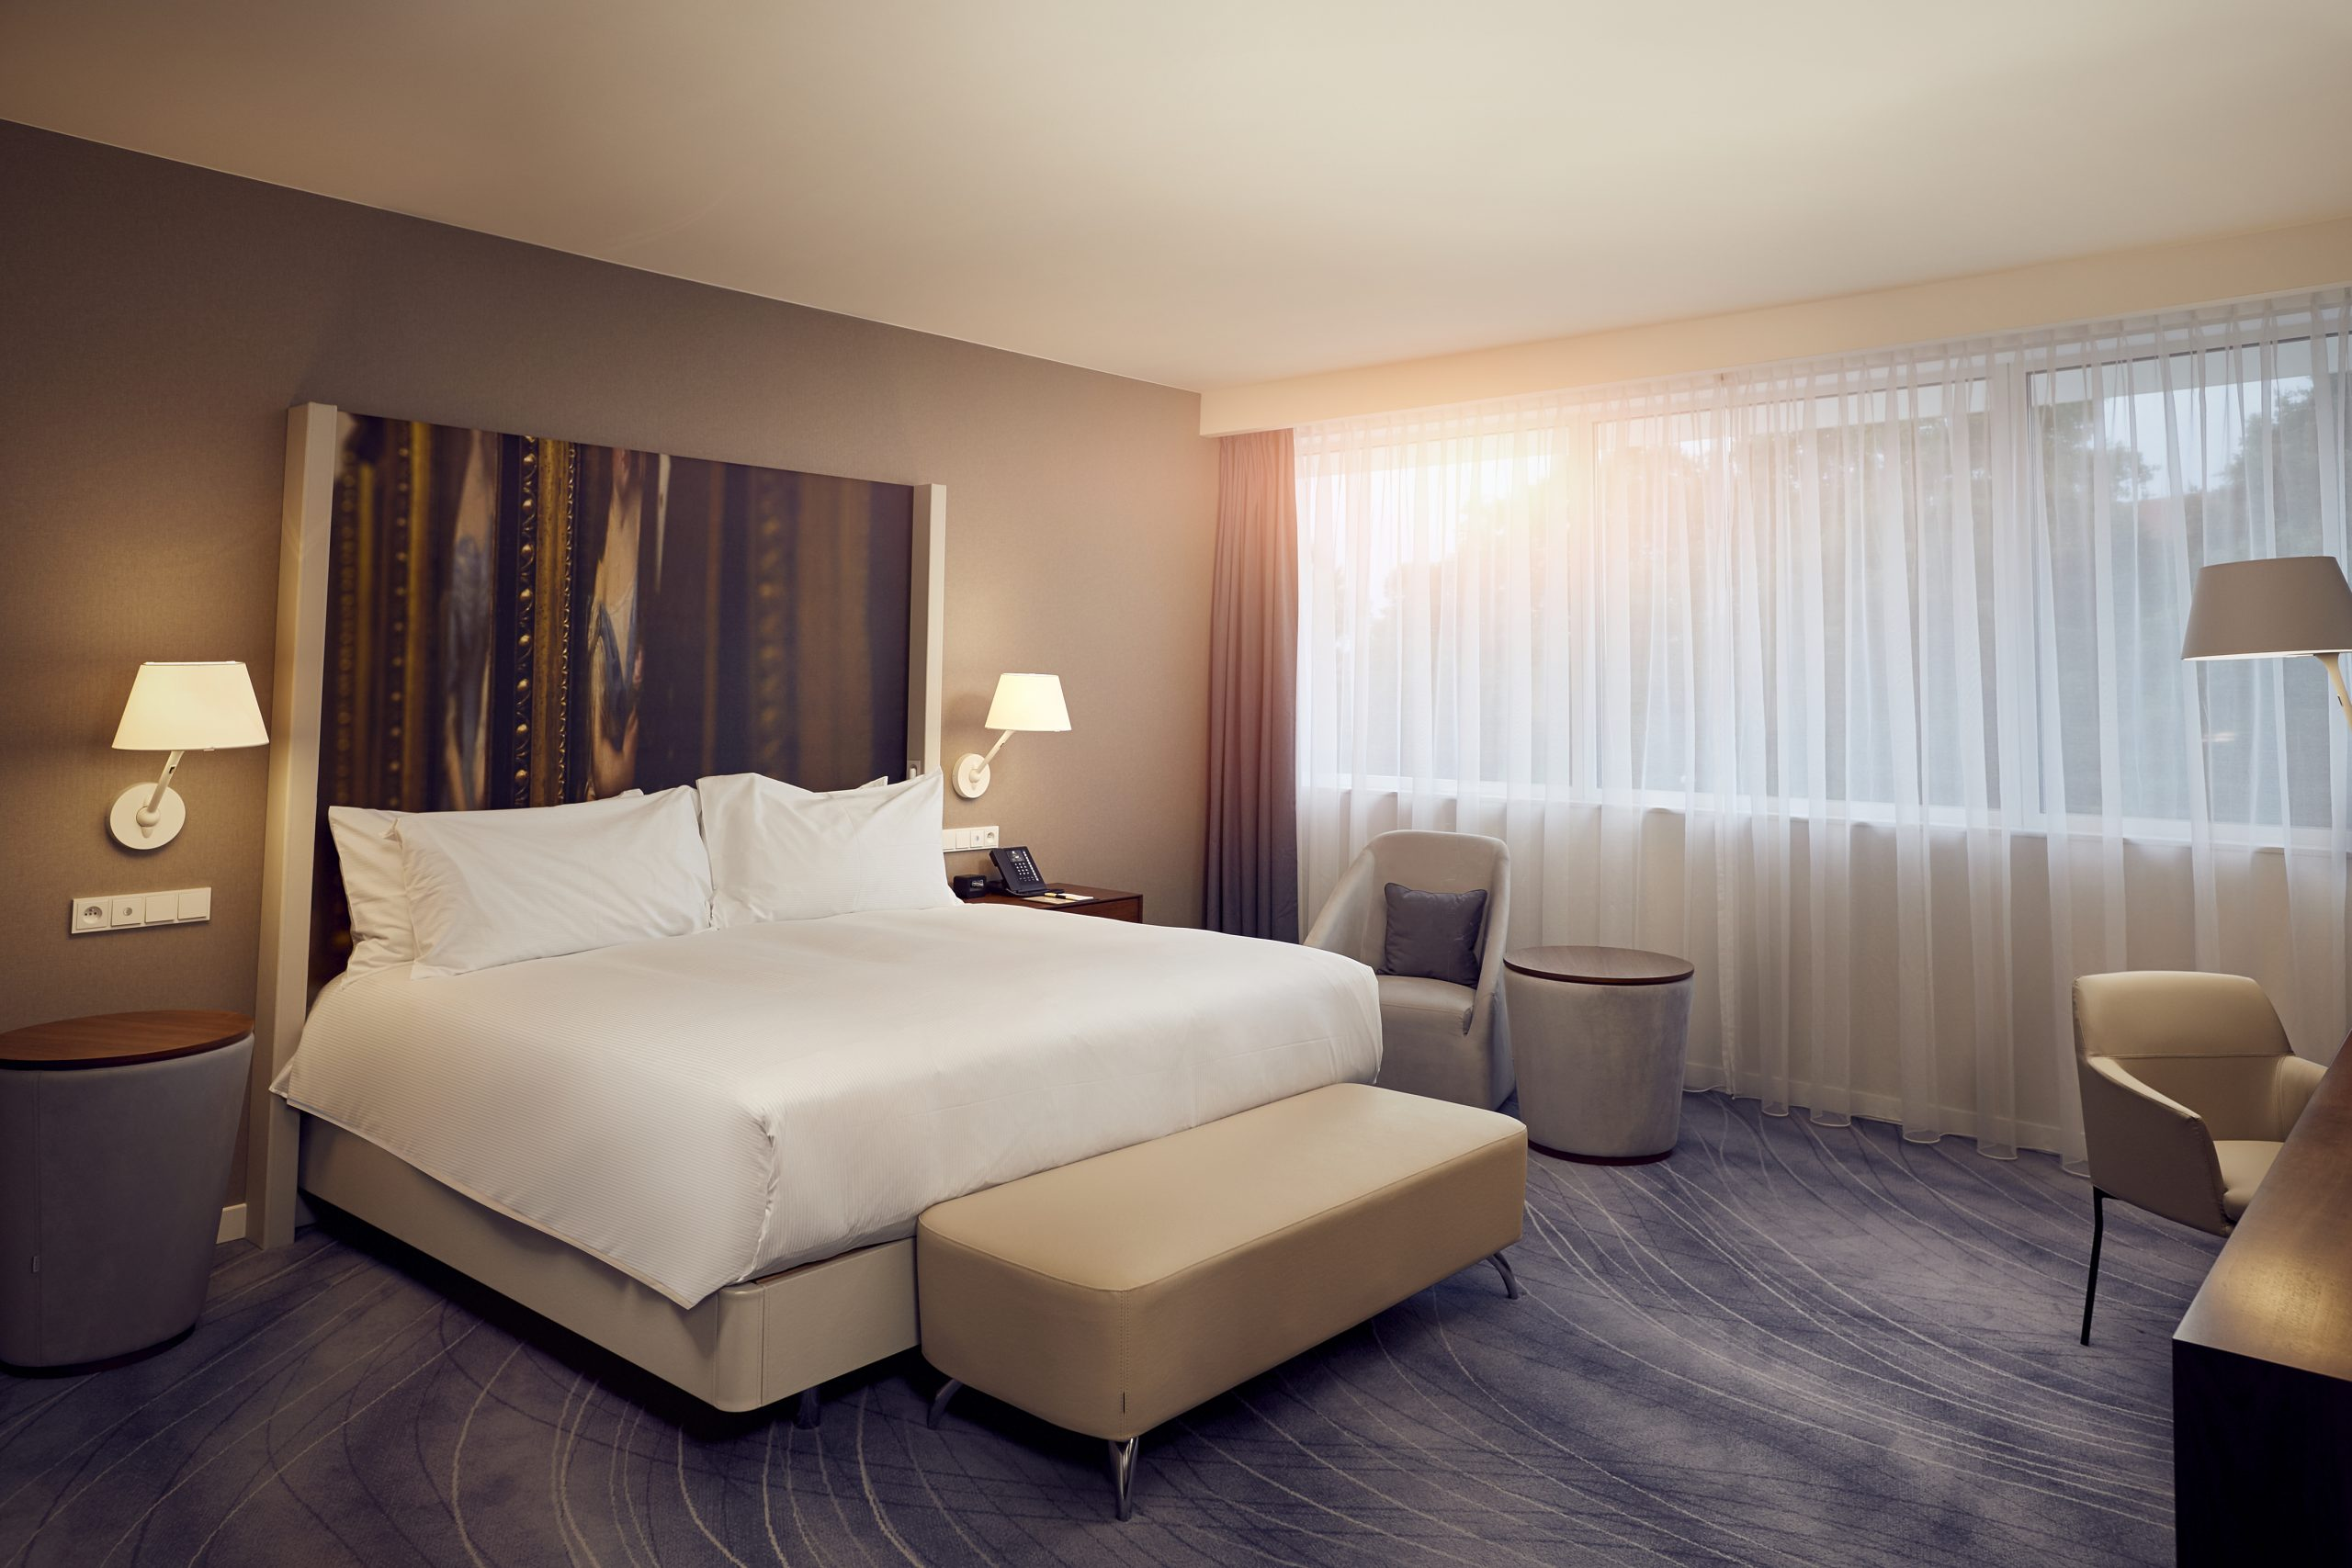 Double Tree Wroclaw - Presidential Suite - Bed